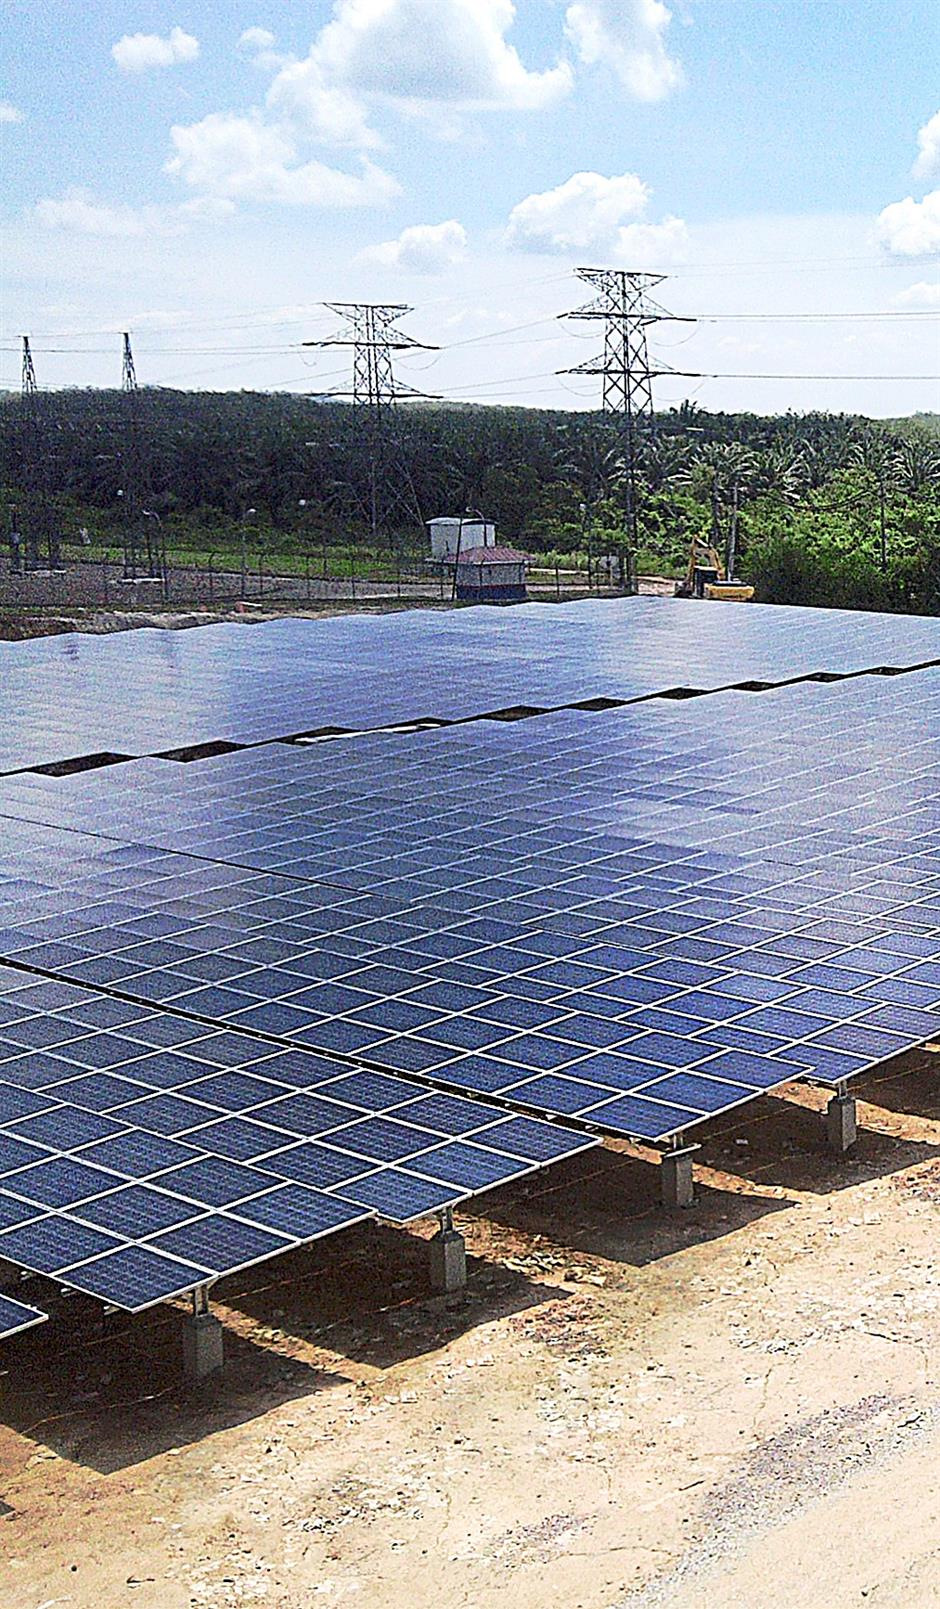 The 10mw Amcorp Power solar farm in Gemas, Negri Sembilan, features photovoltaic cells manufacted by Yingli Green Energy.